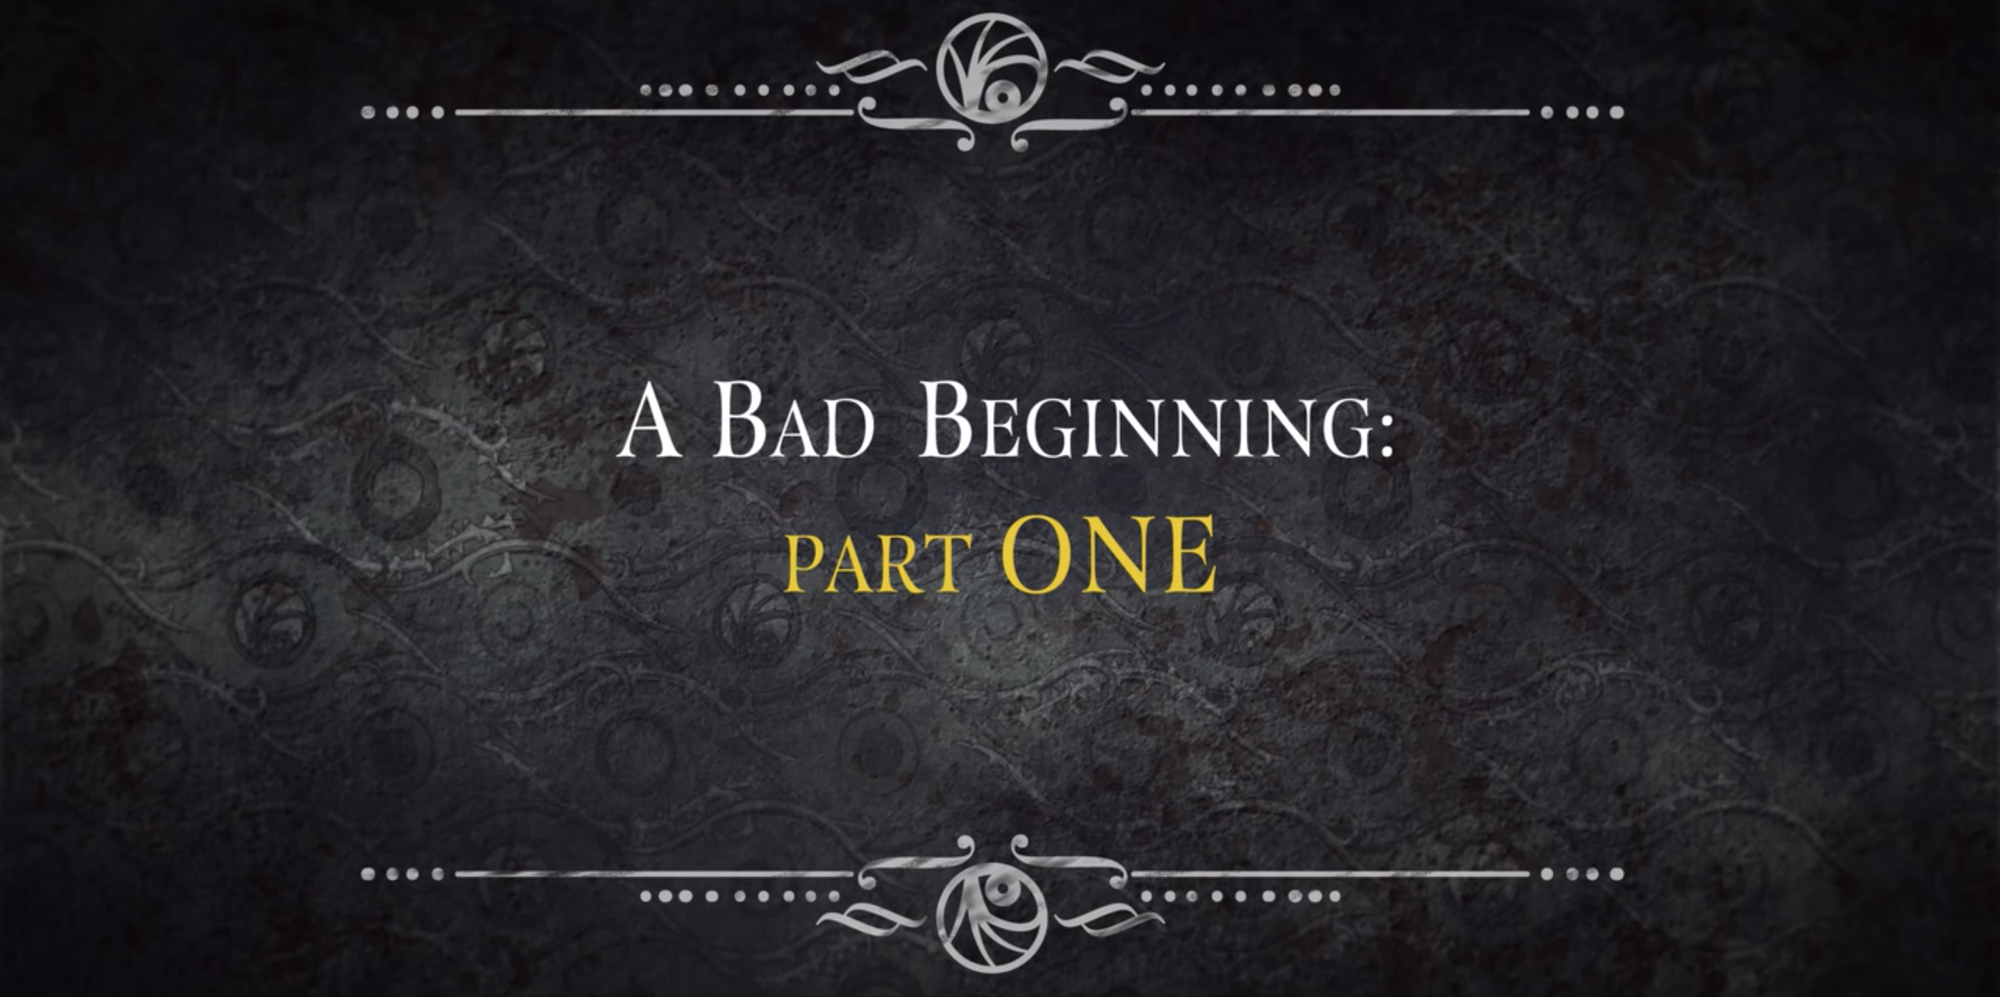 A Bad Beginning: Part One | Lemony Snicket Wiki | FANDOM